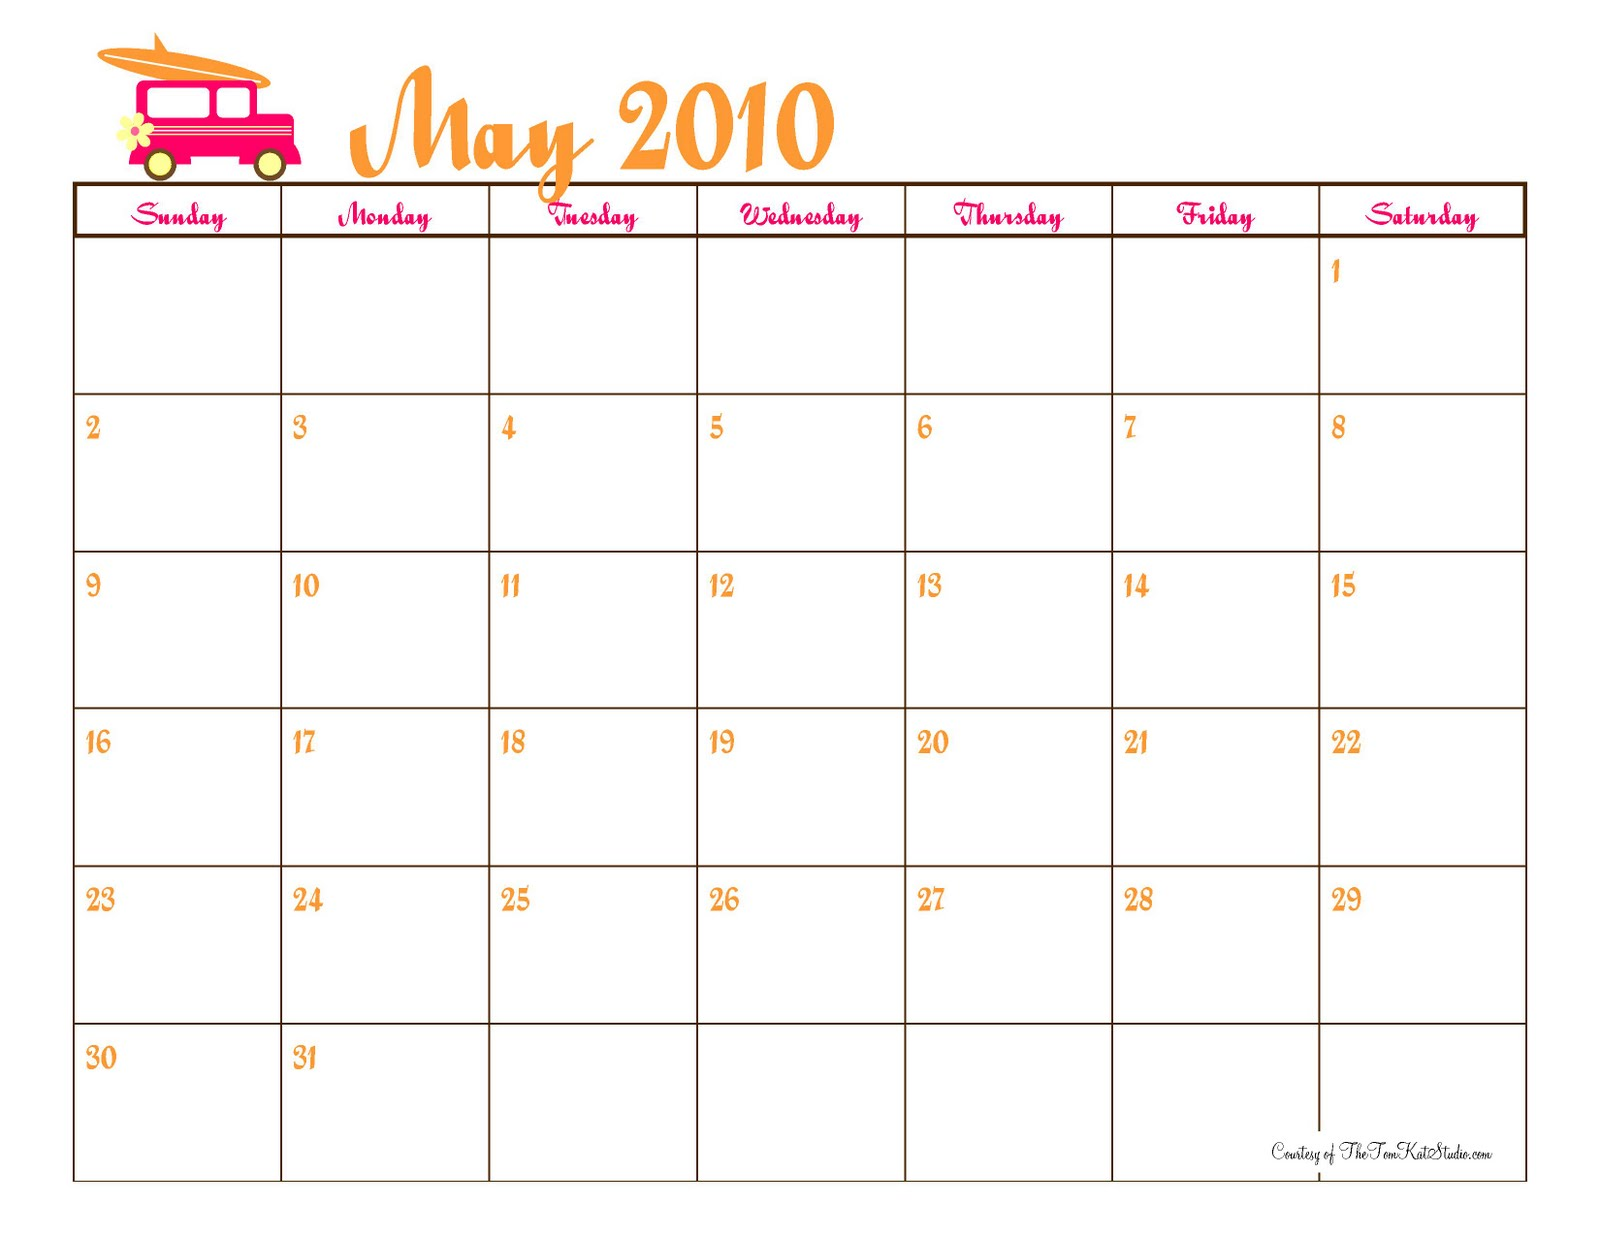 printable monthly calendar 2010 Download free printable monthly